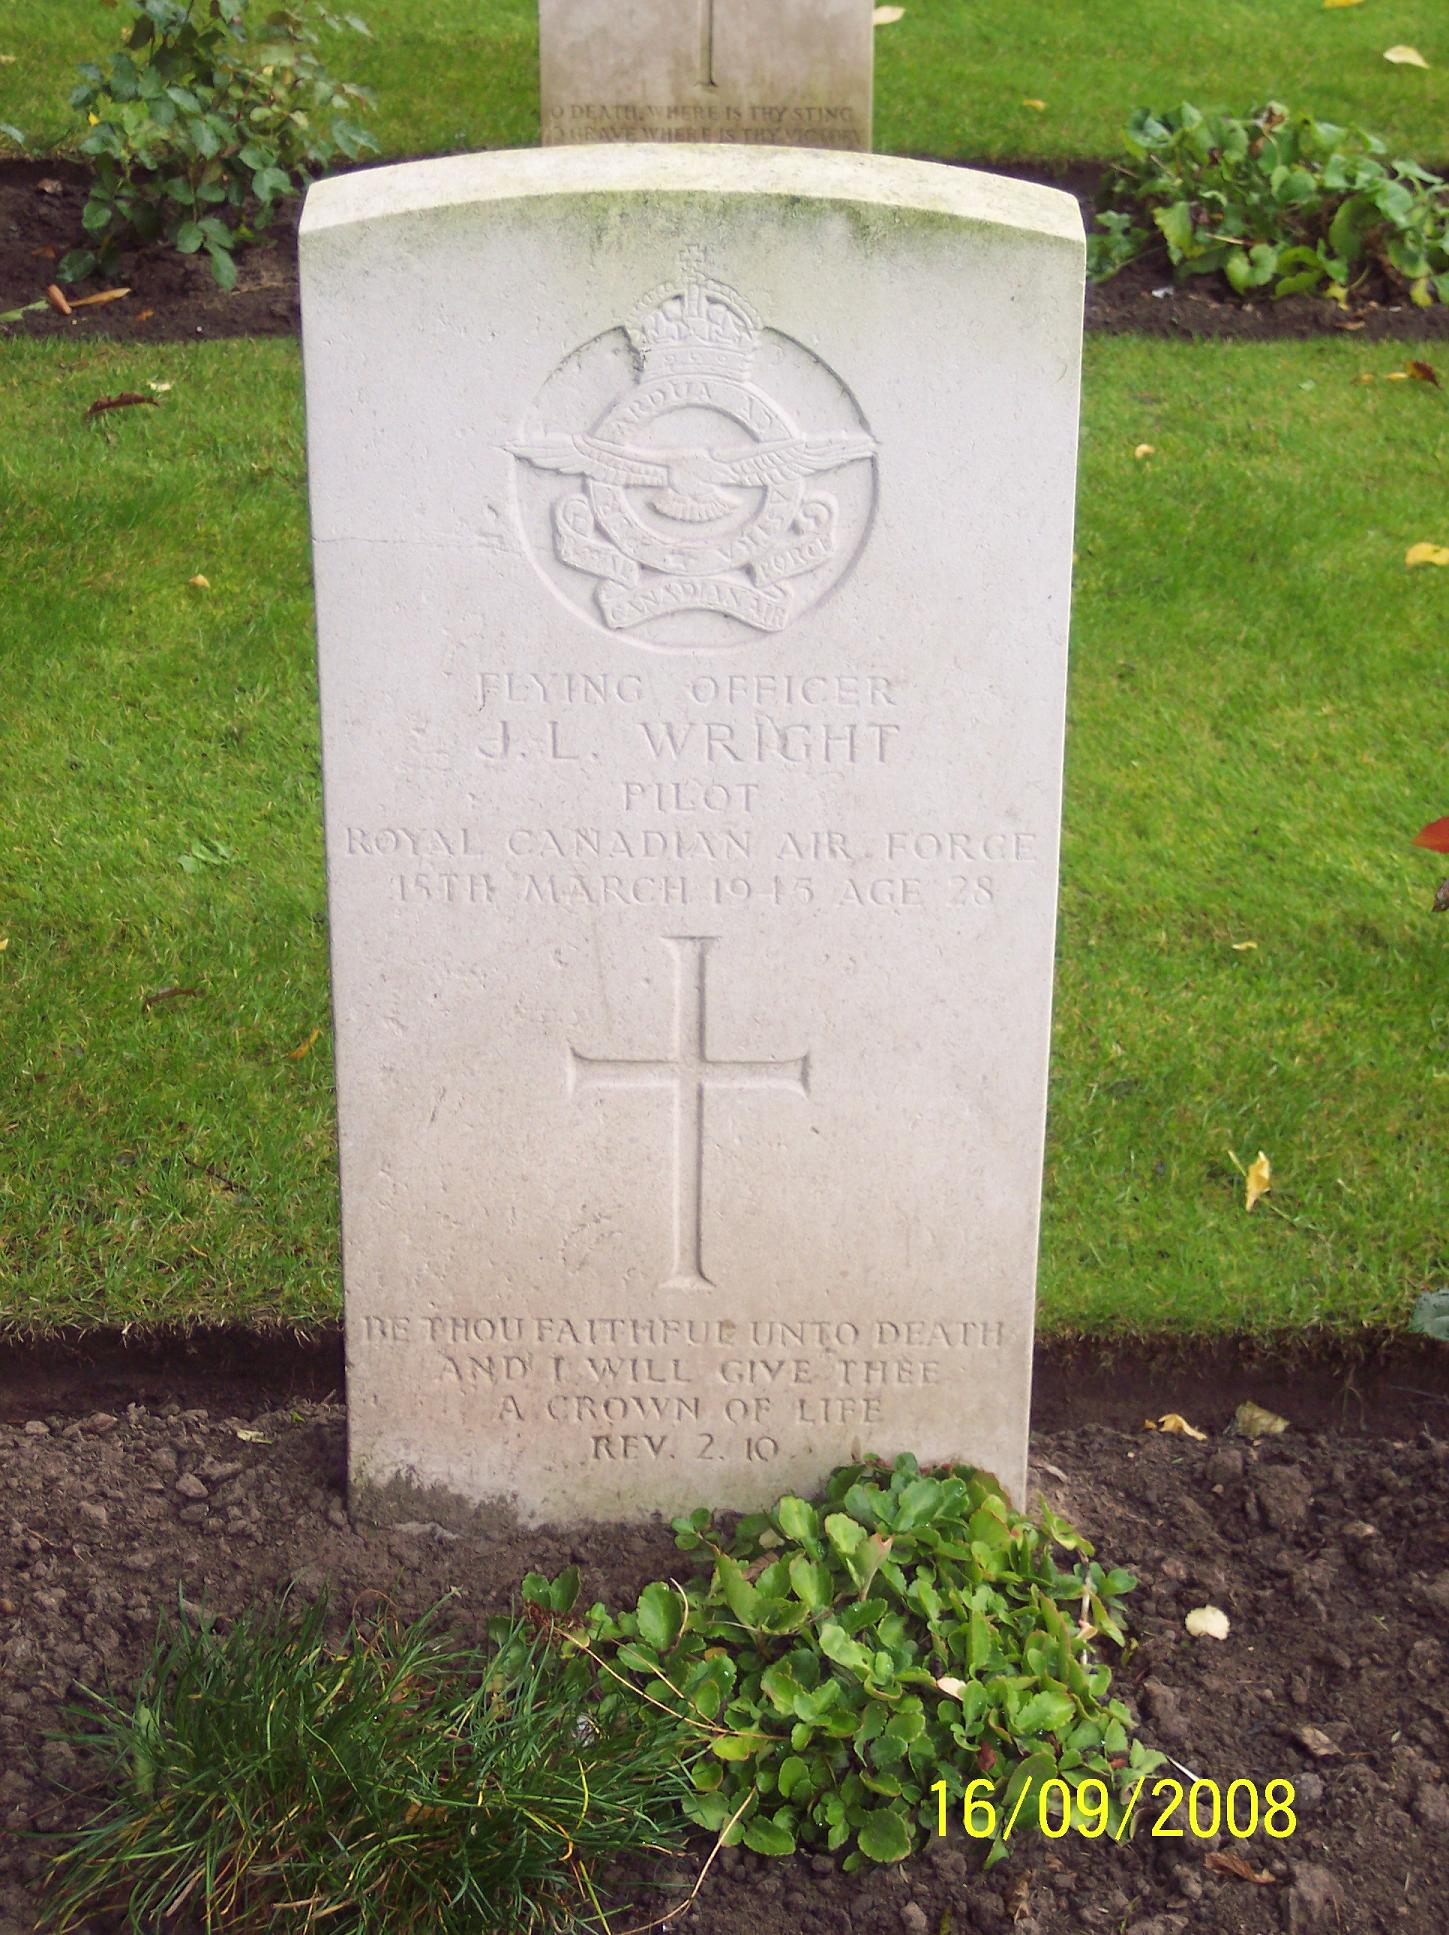 Photo of The grave in Blacon Cemetery